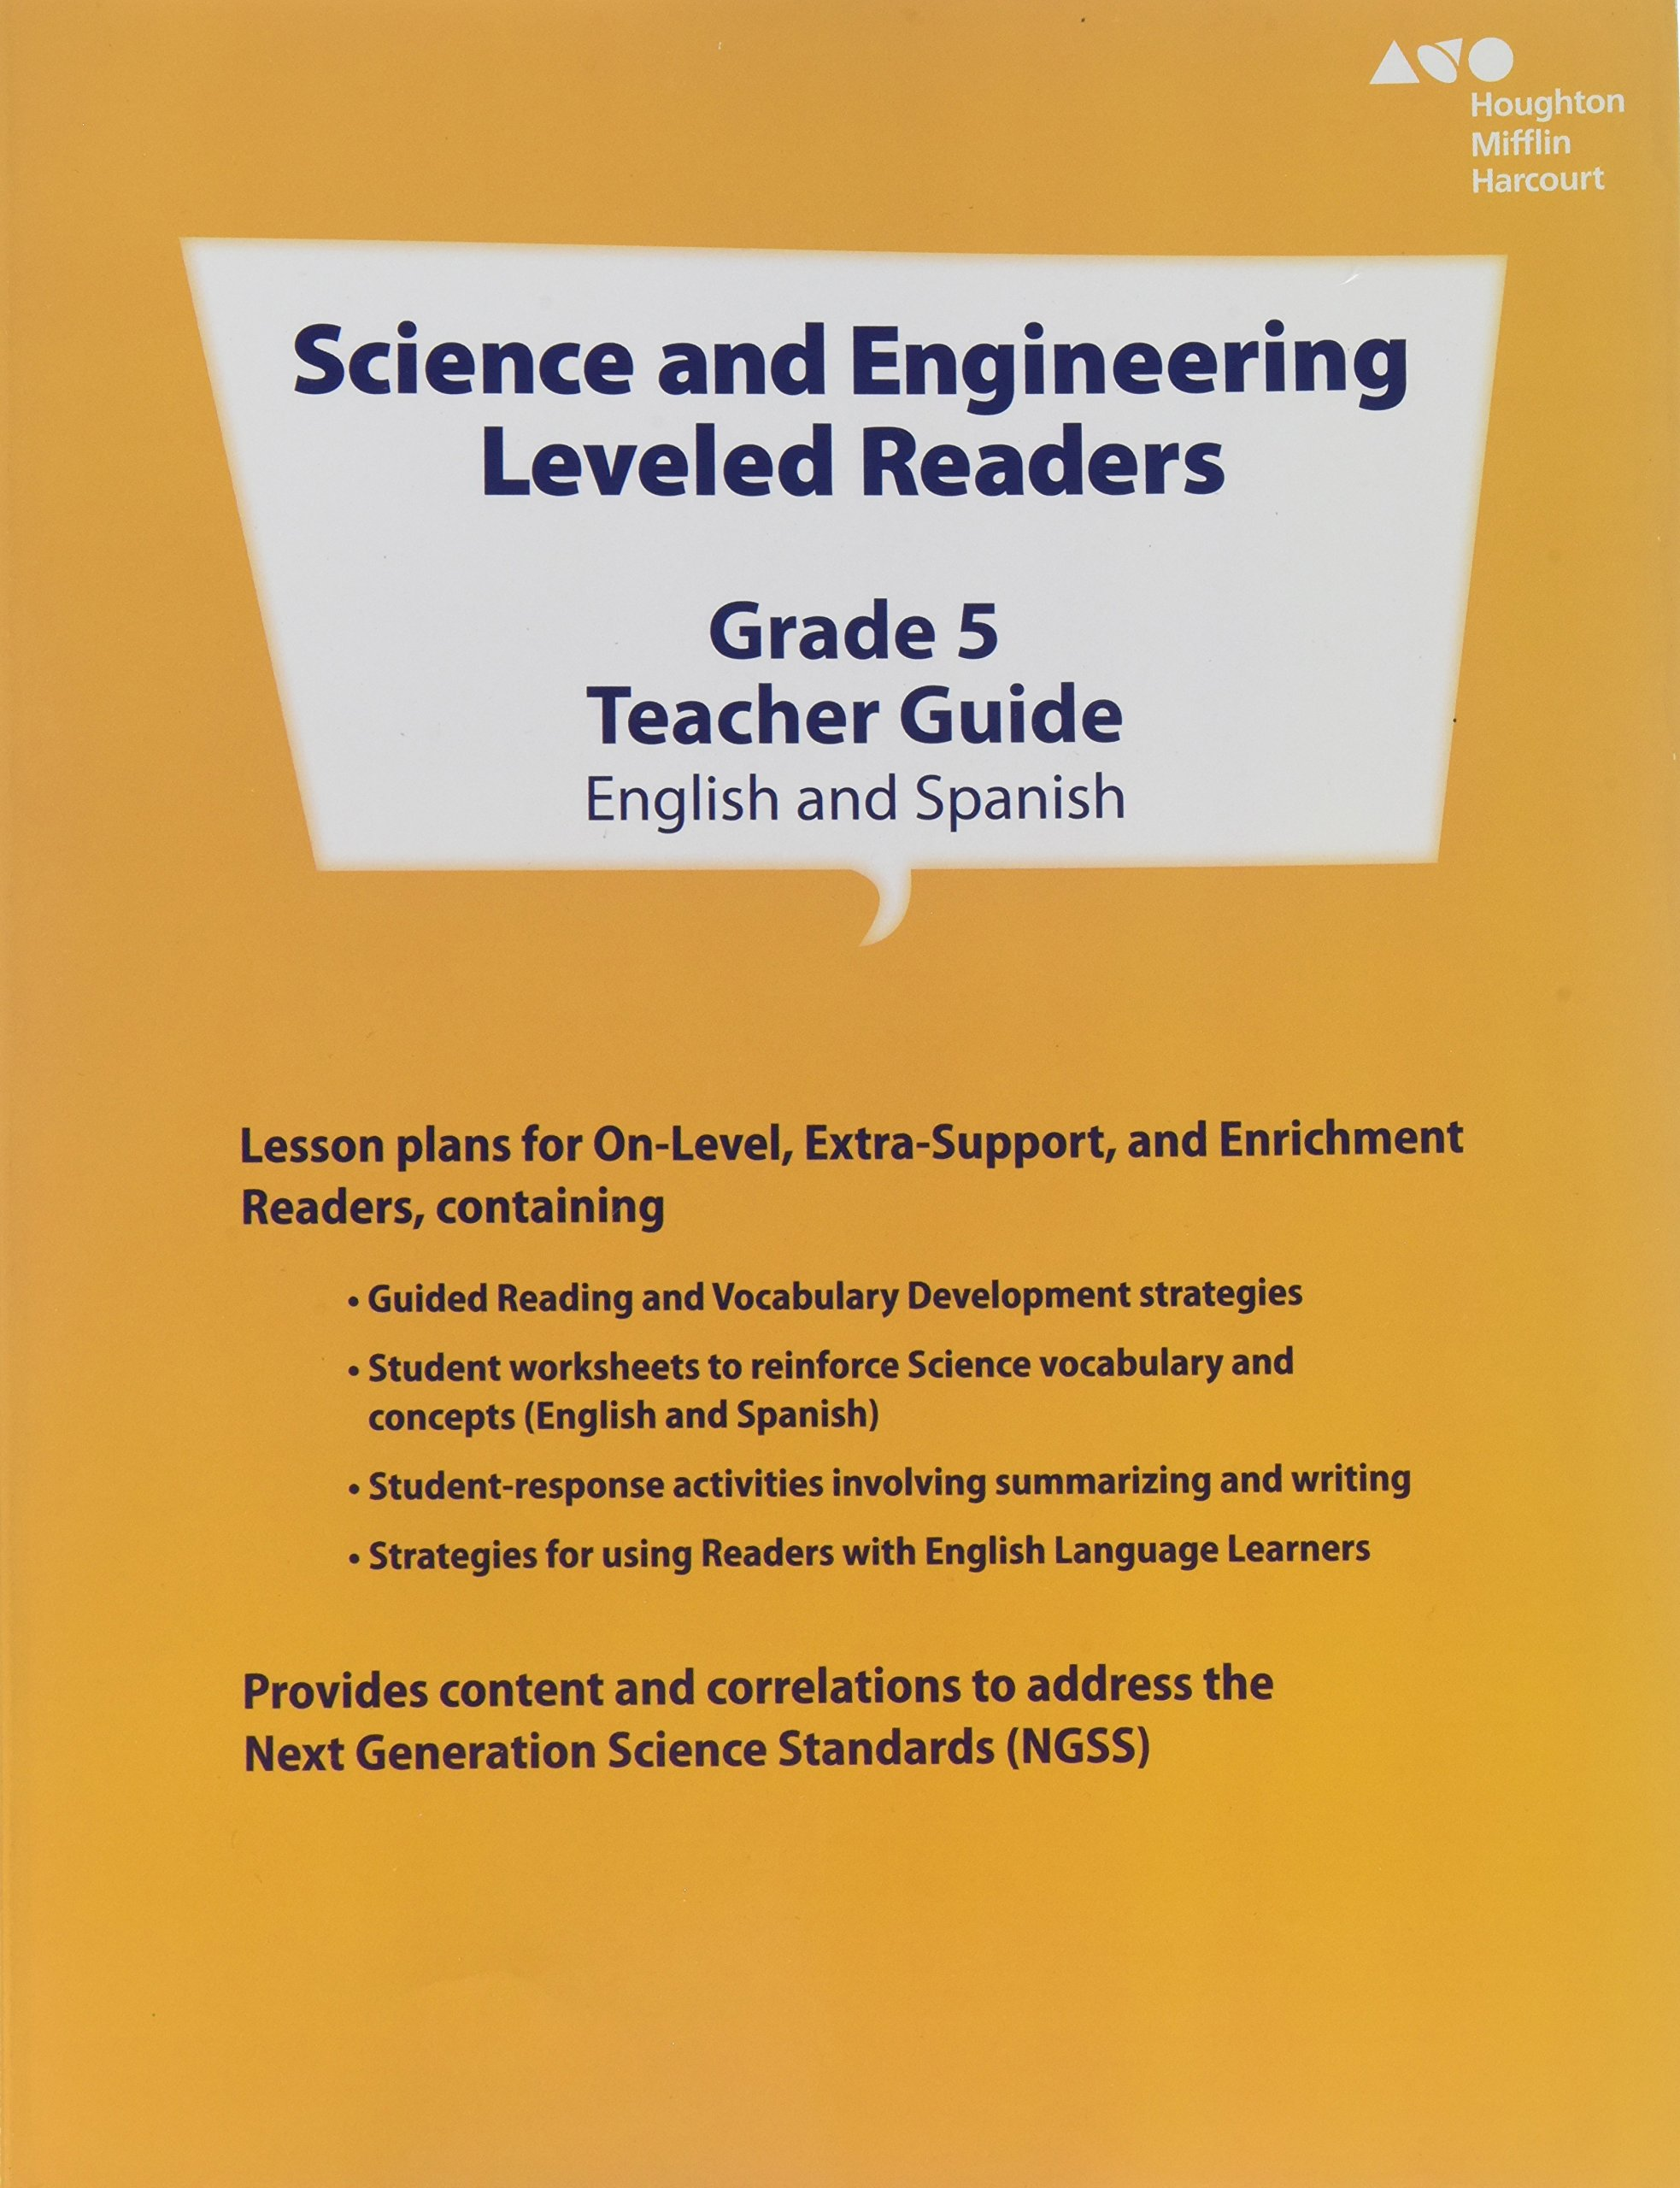 Science and Engineering Leveled Readers: Teacher's Guide Grade 5 2014:  9780544302259: Amazon.com: Books